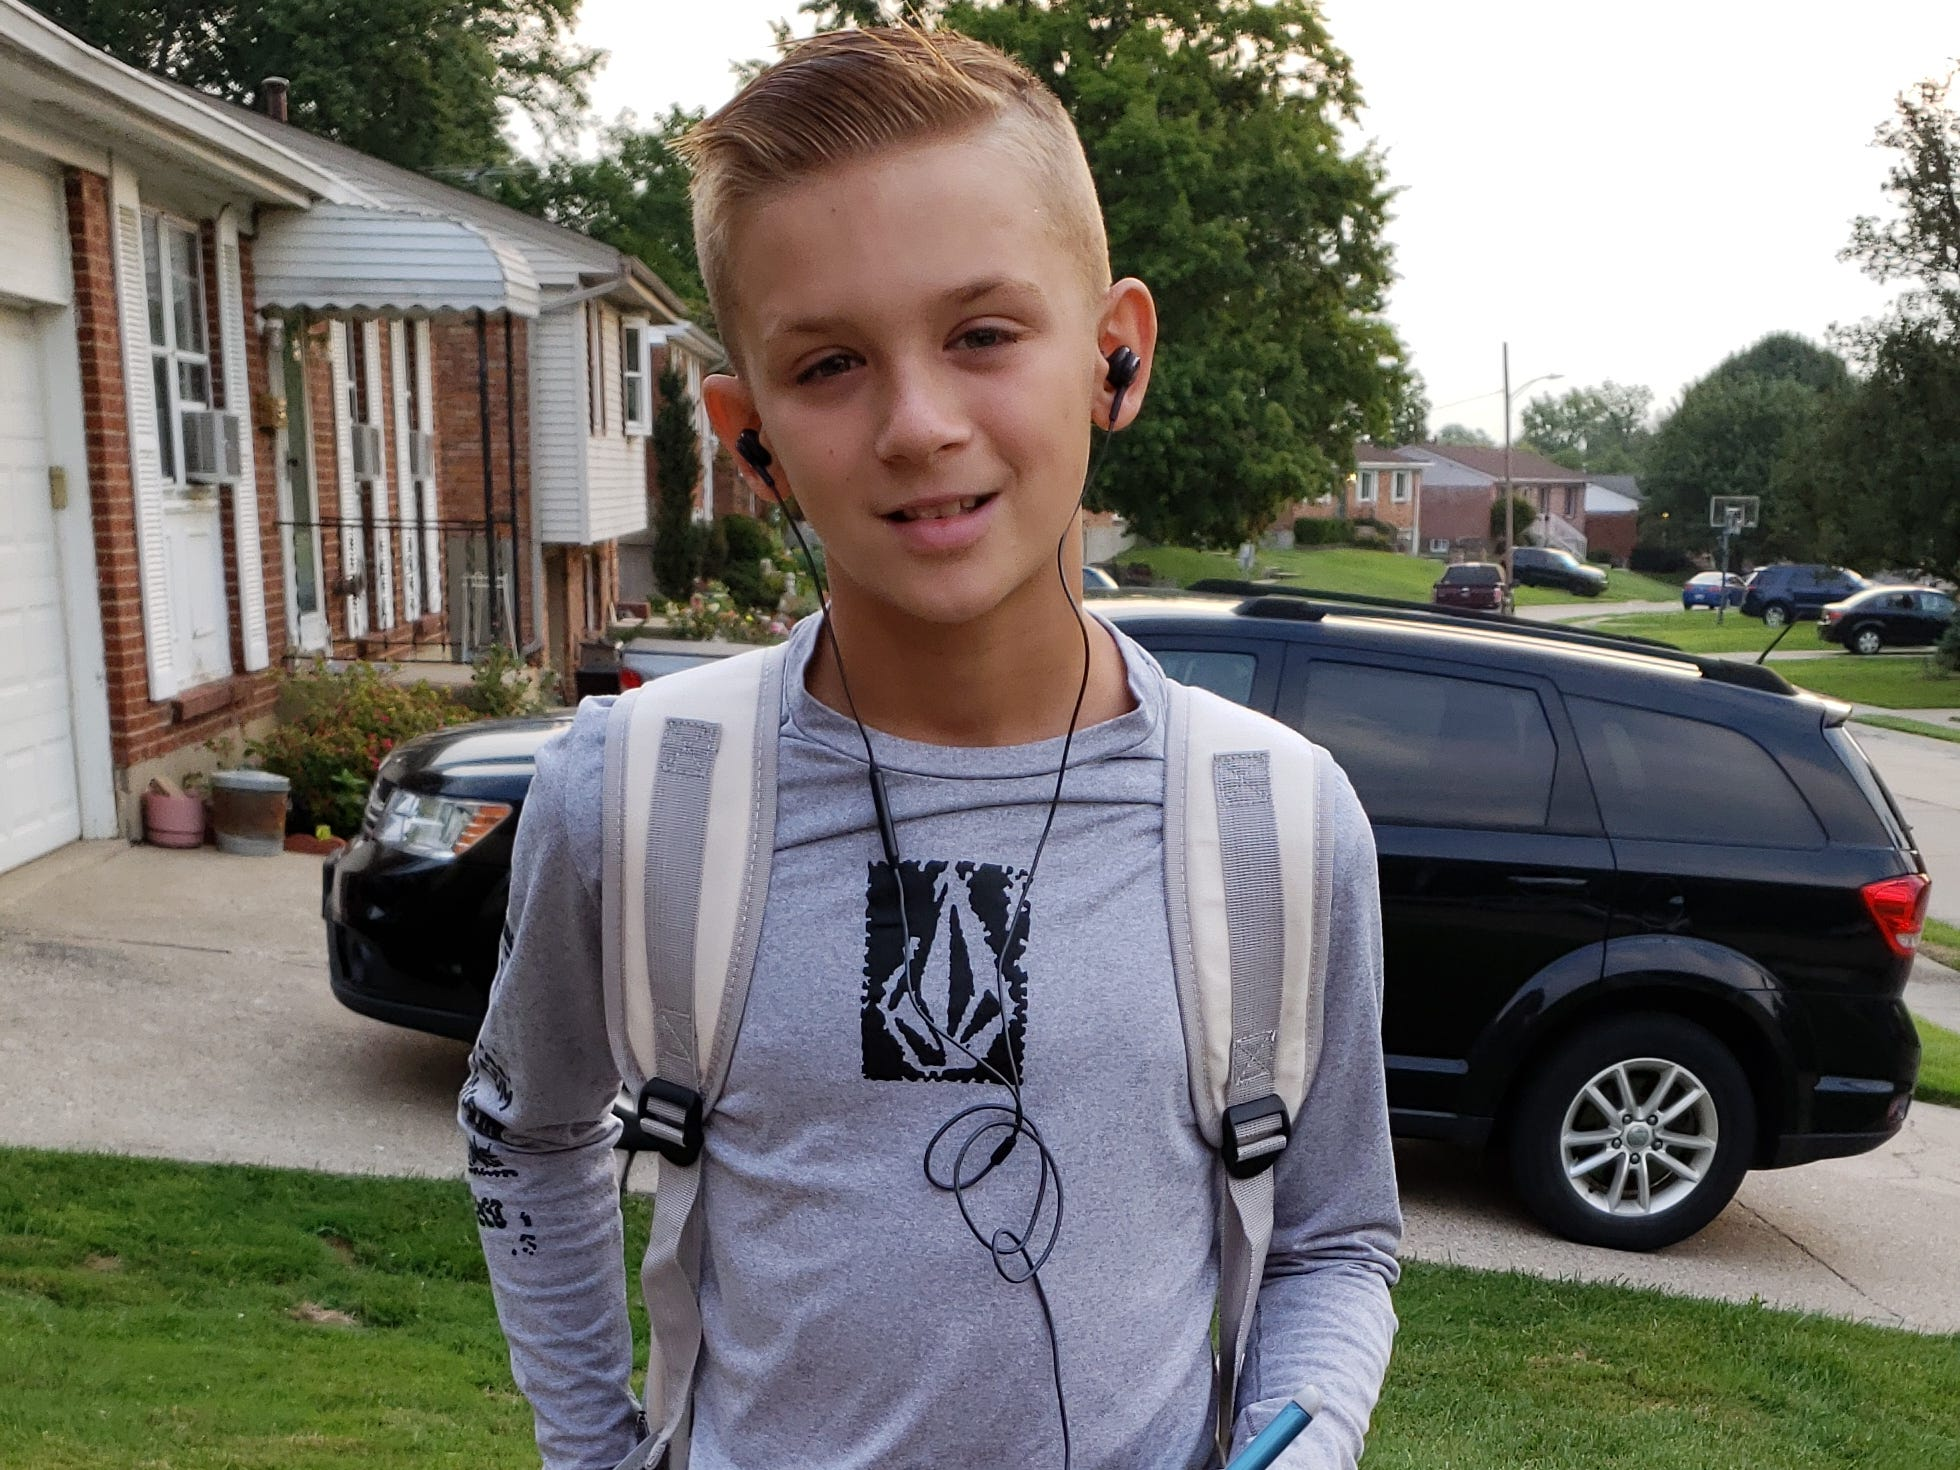 It's the first day of middle school for Preston Piper of Florence Aug. 15, 2018. He is a sixth-grader at Ockerman Middle School.